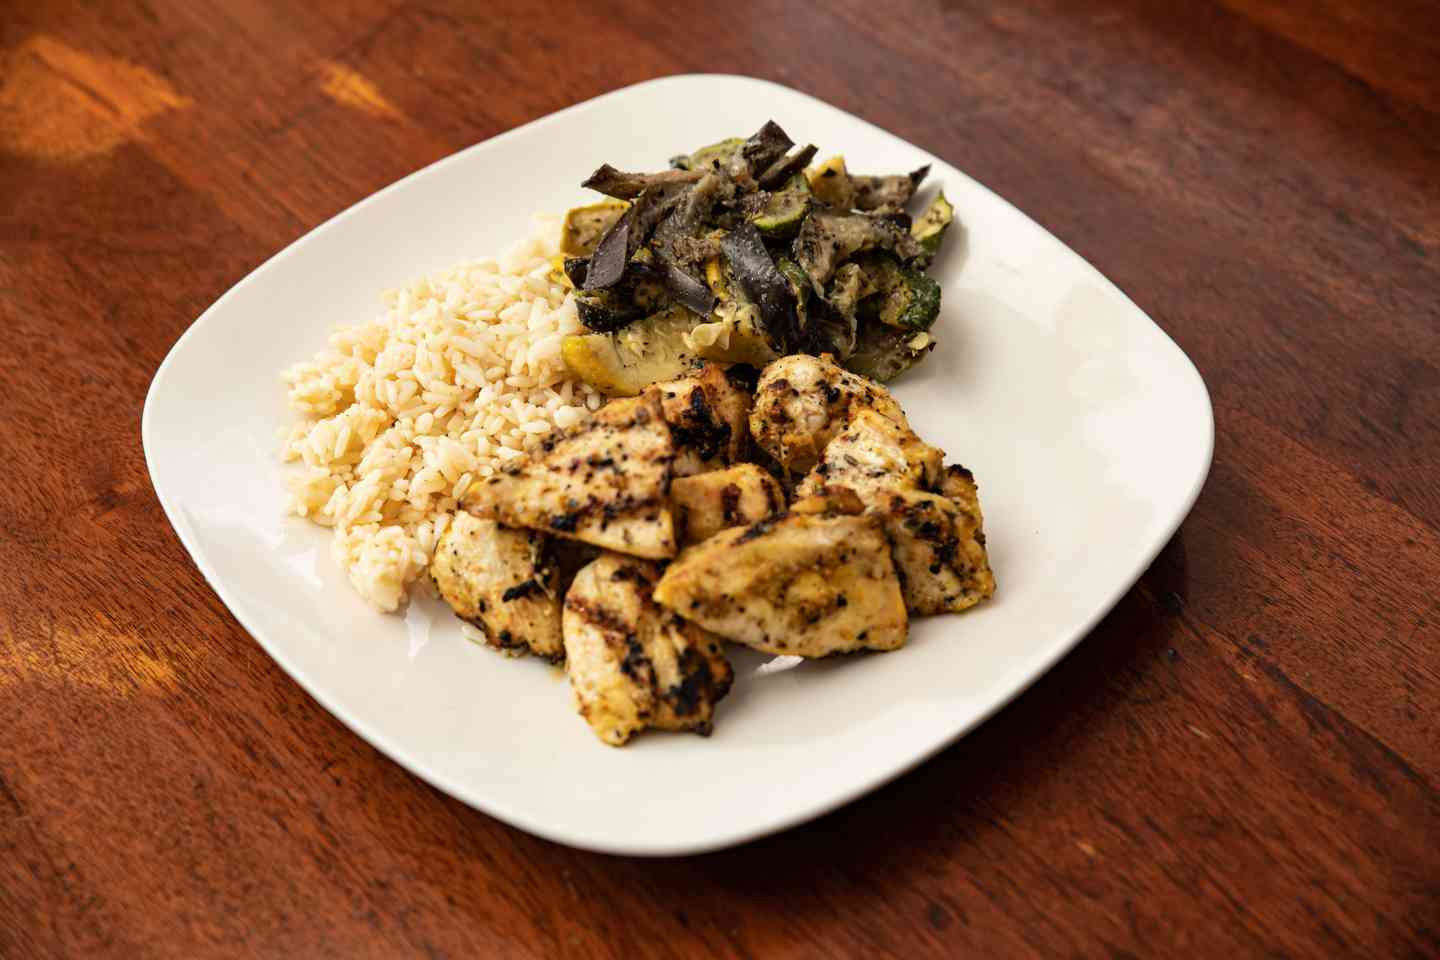 Grilled Chicken Tip Entrée